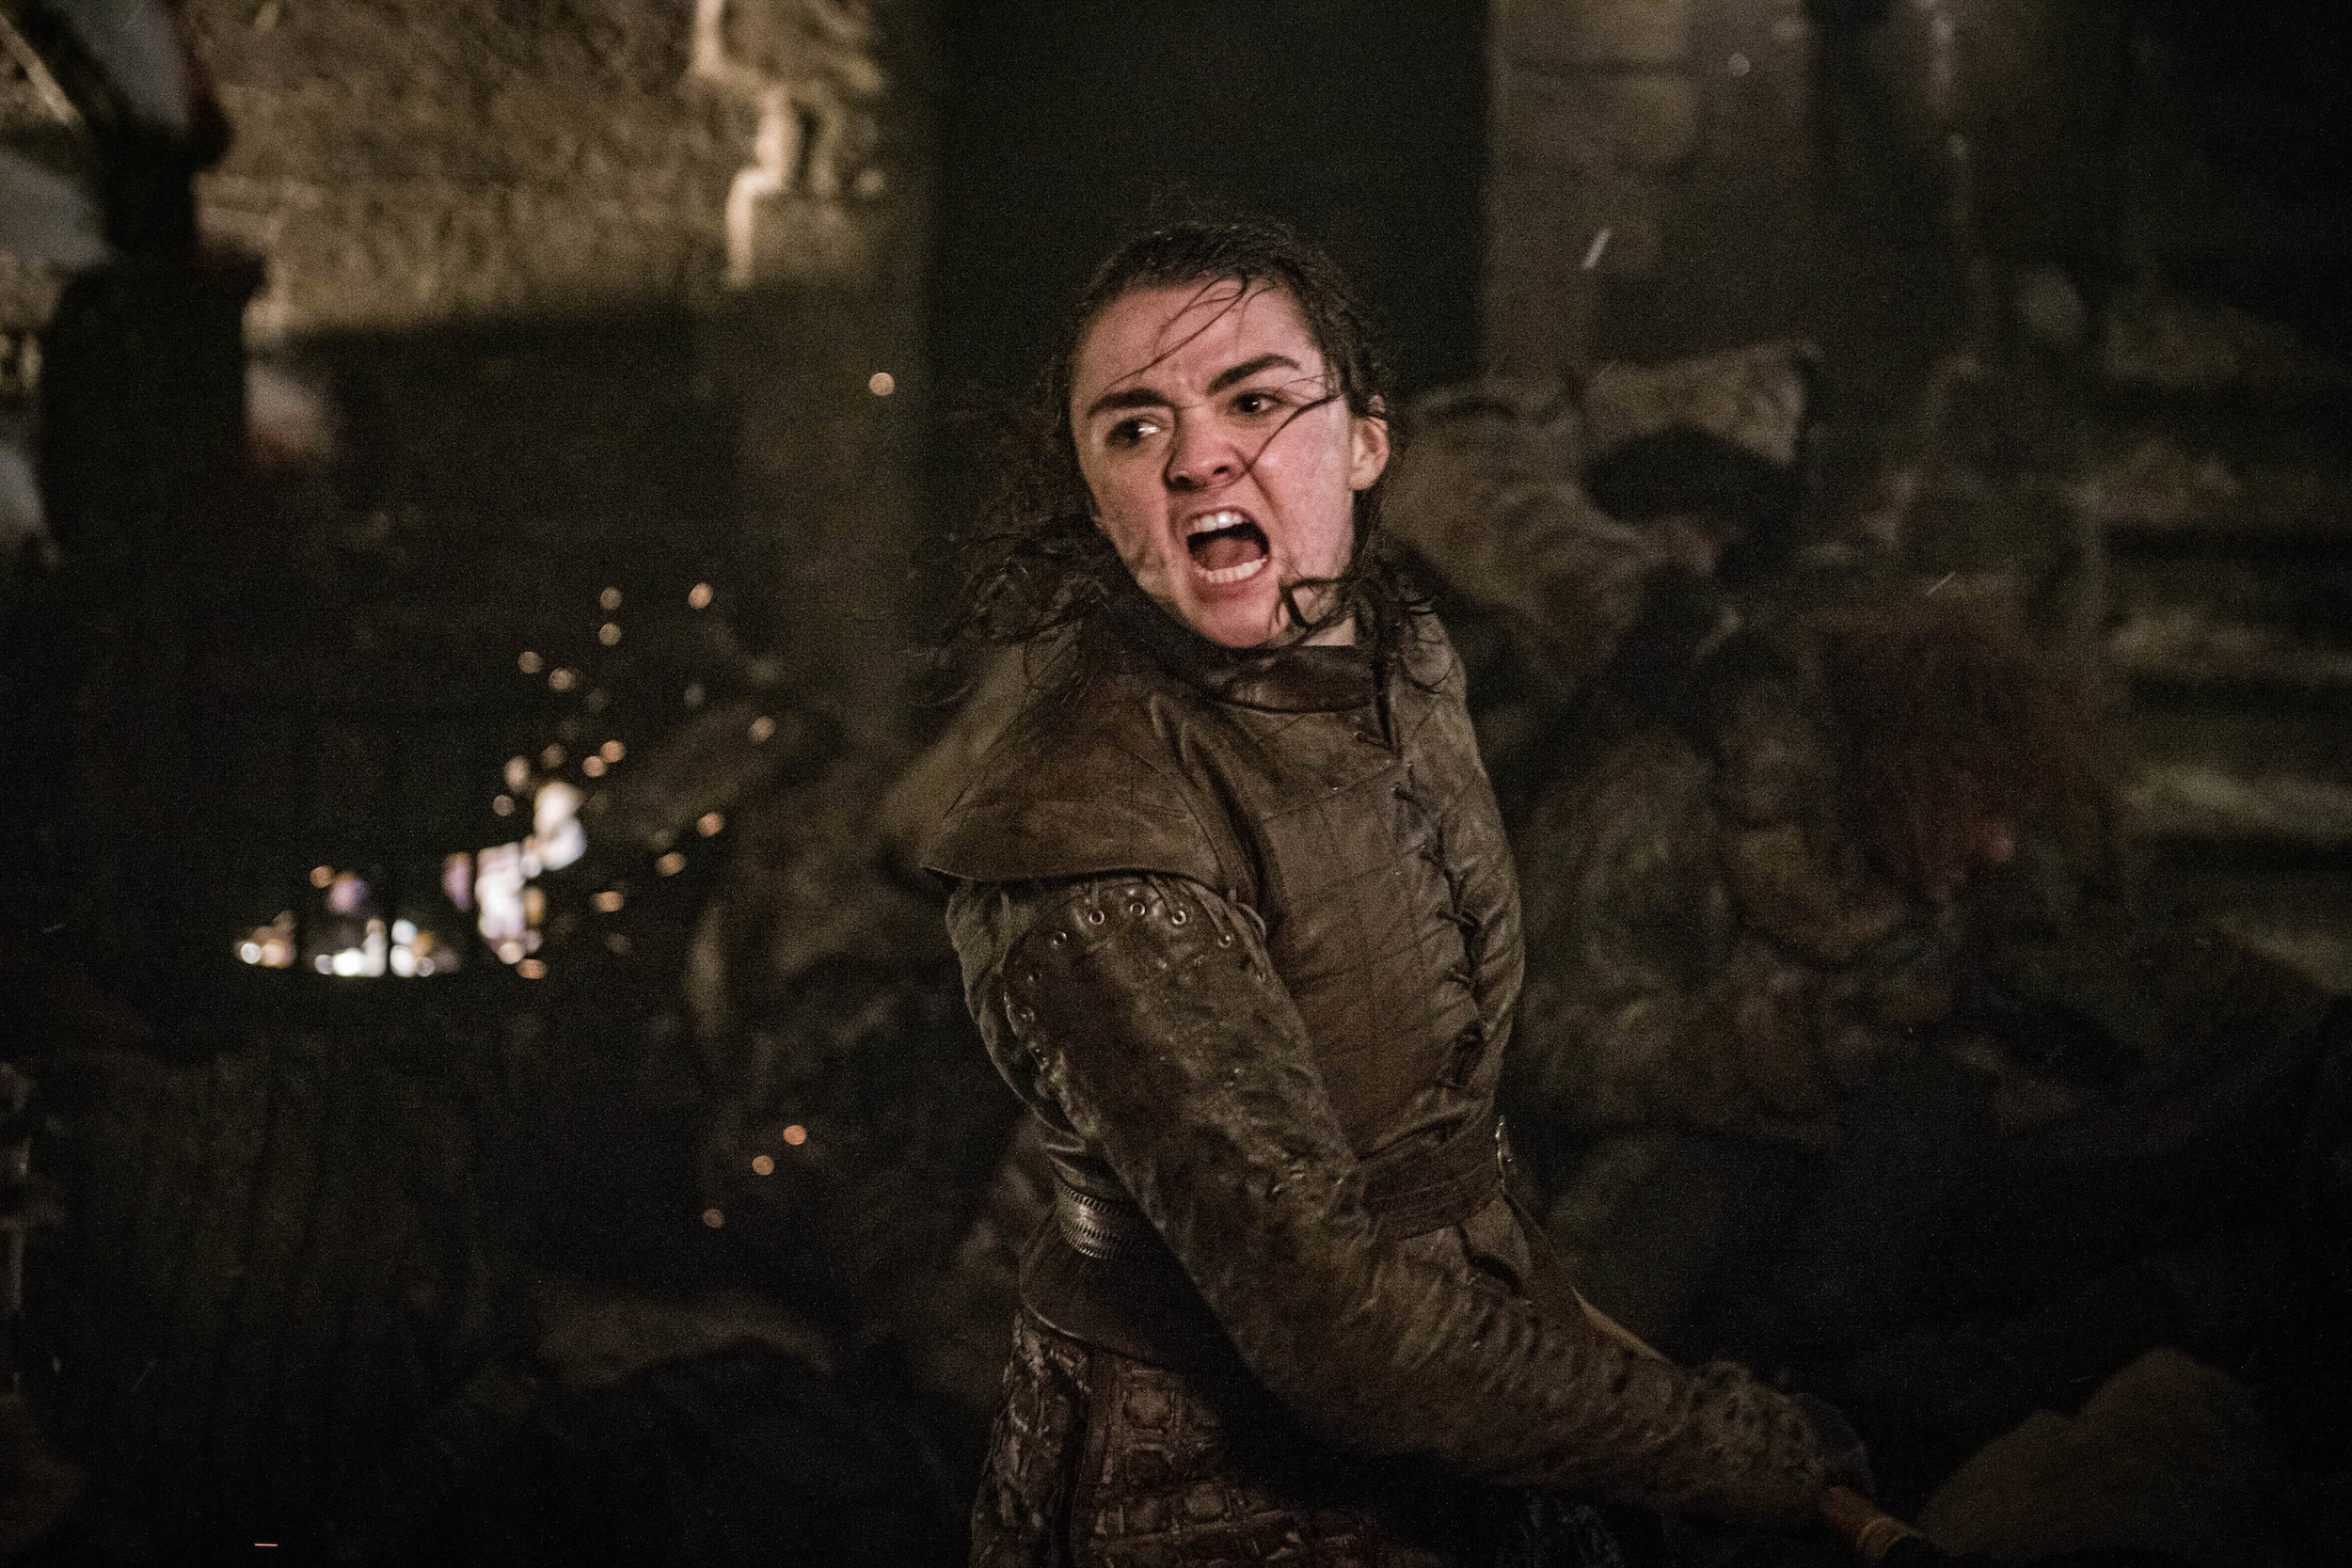 What Arya might encounter on her post-Game of Thrones journey